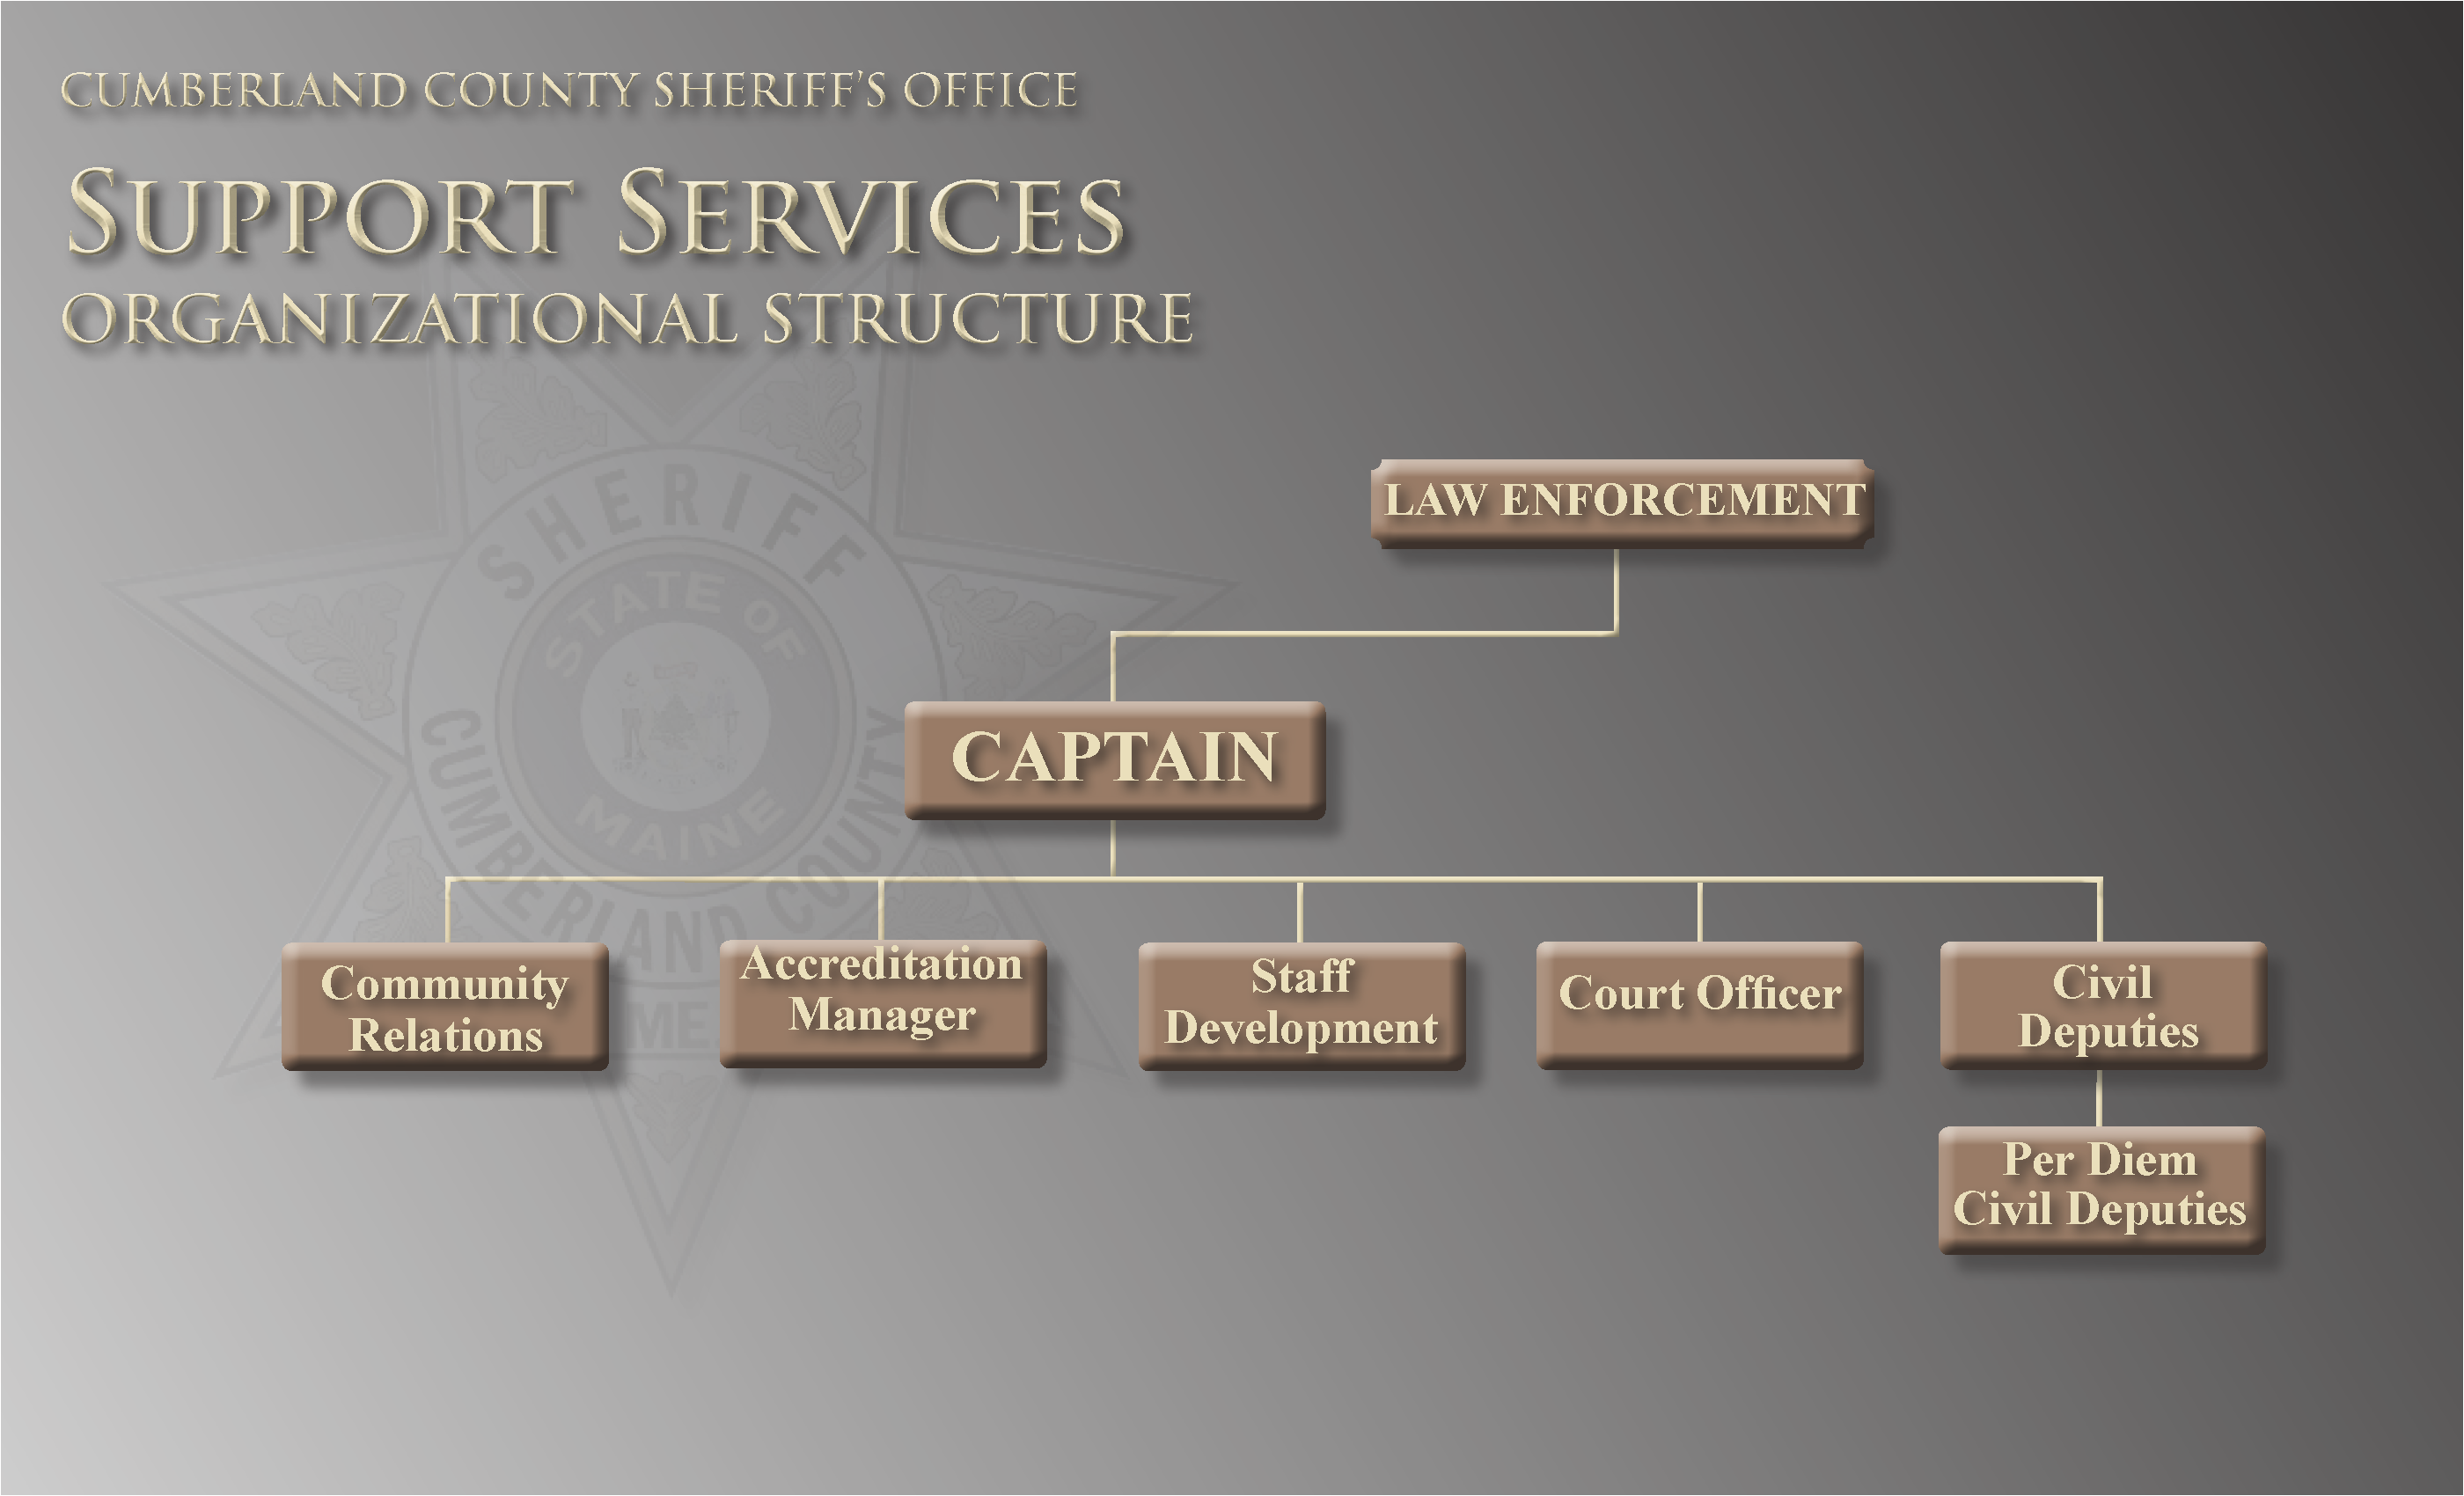 Cumberland County Sheriffs Office Support Services Organizational Structure